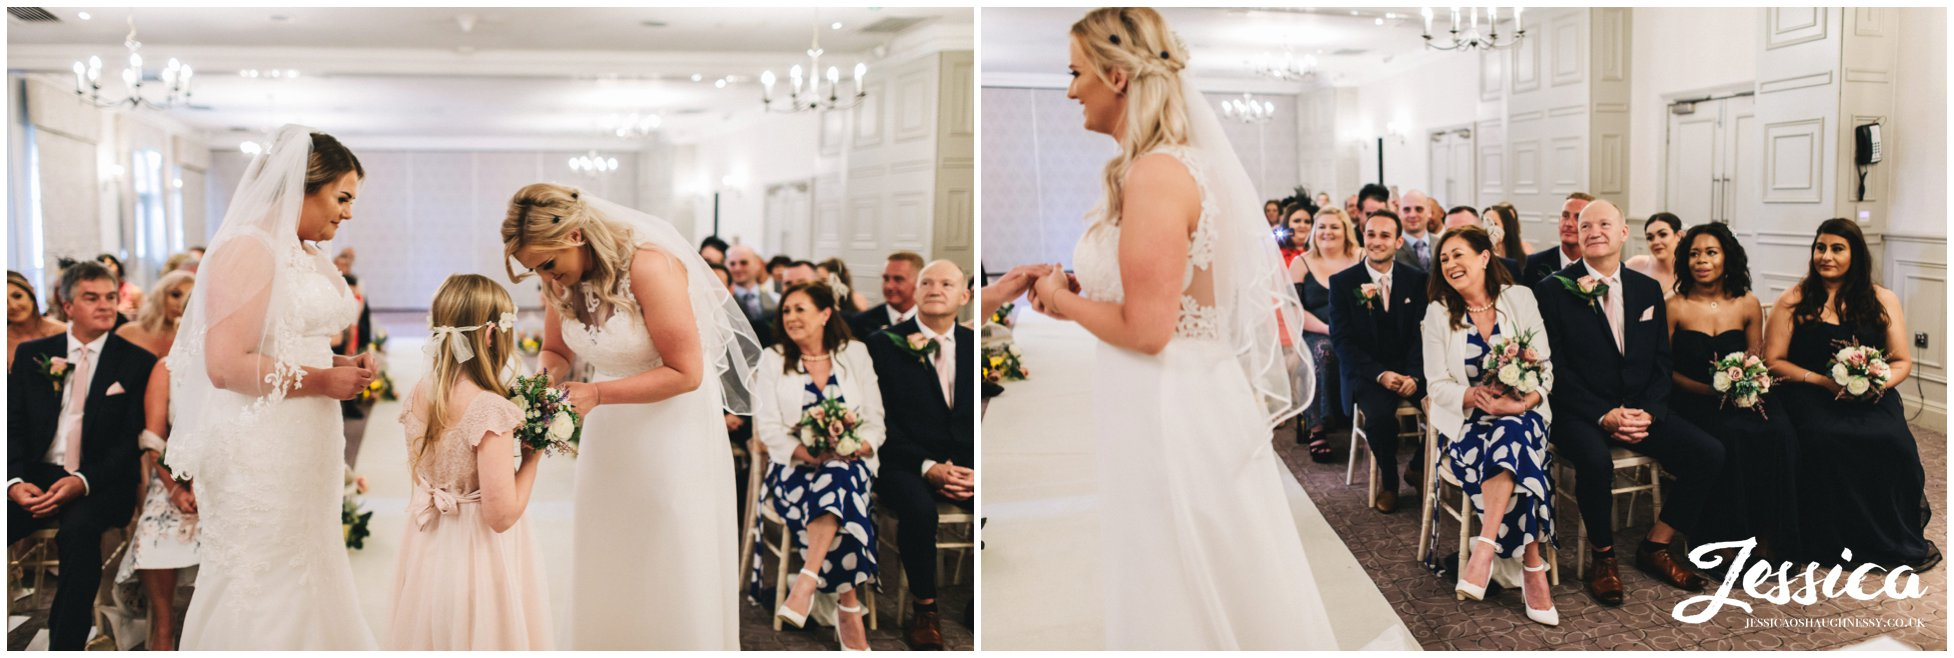 the flower girl gives the brides their rings to exchange